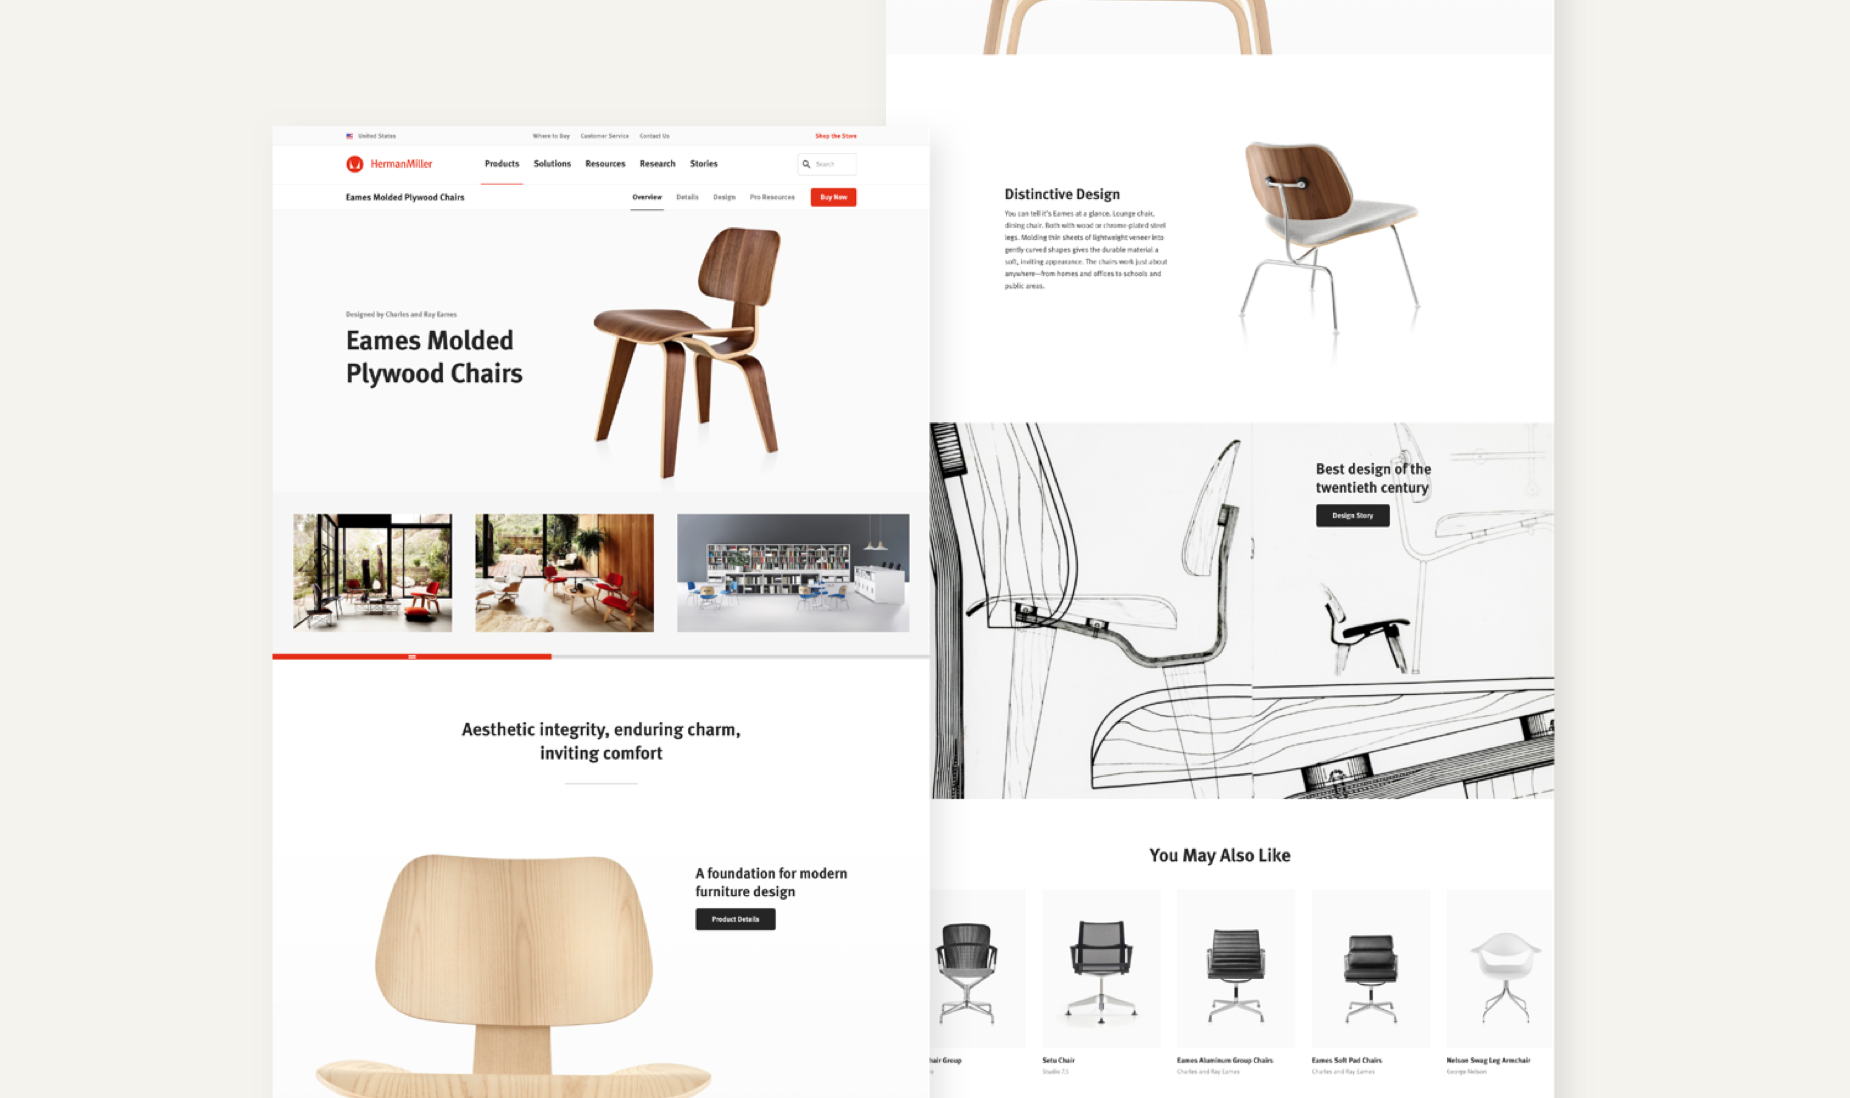 Example product page of Eames Molded Plywood Chairs.